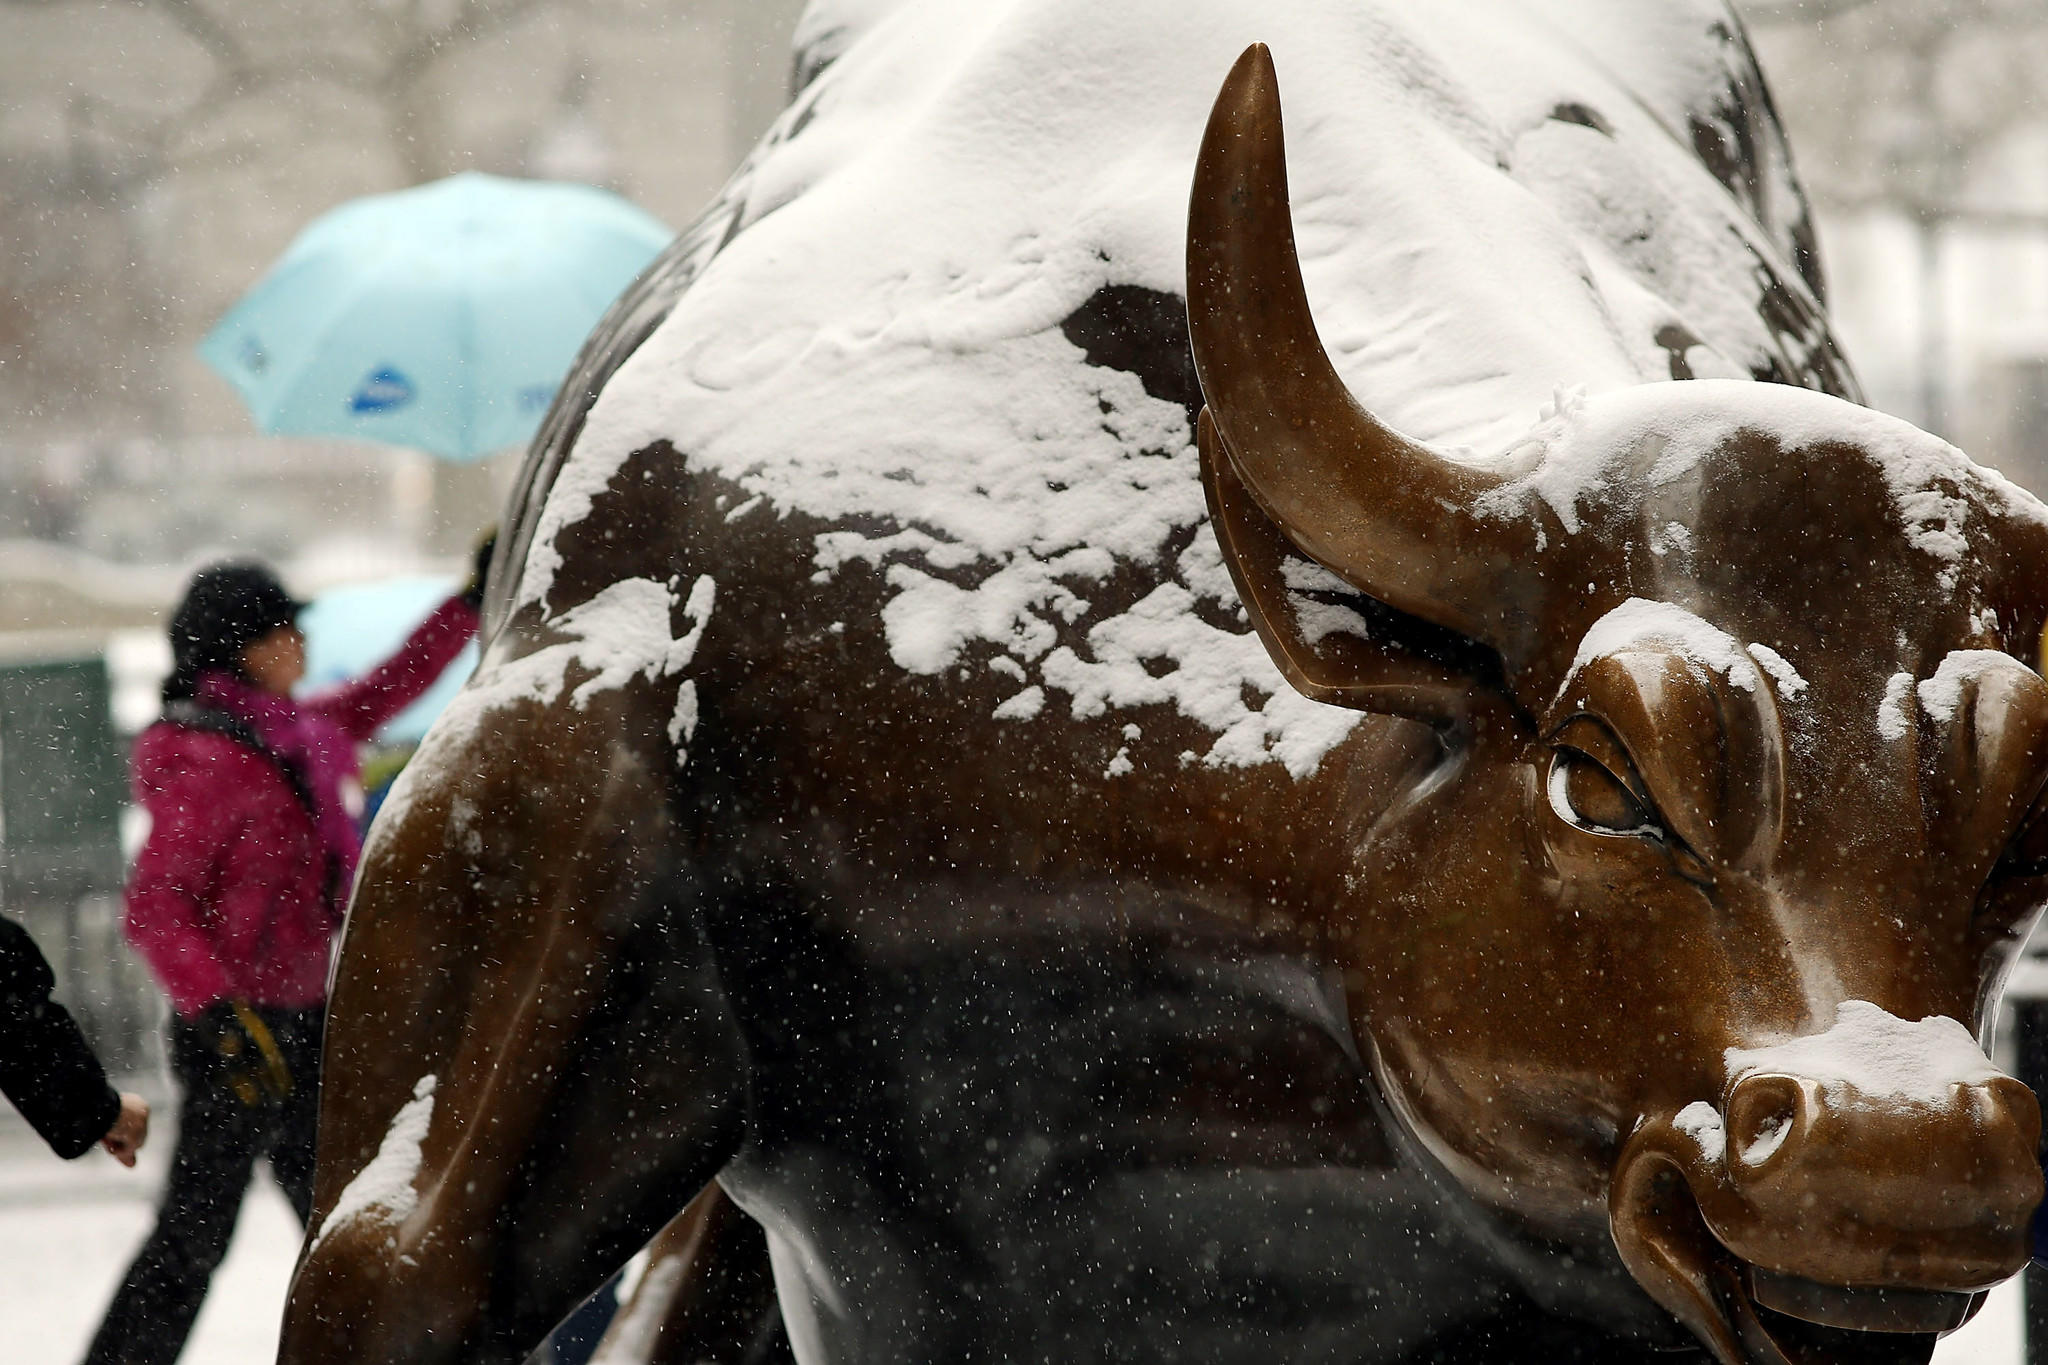 The Wall Street bull is dusted with snow during a snowstorm that moved through the Northeast in January 2014.